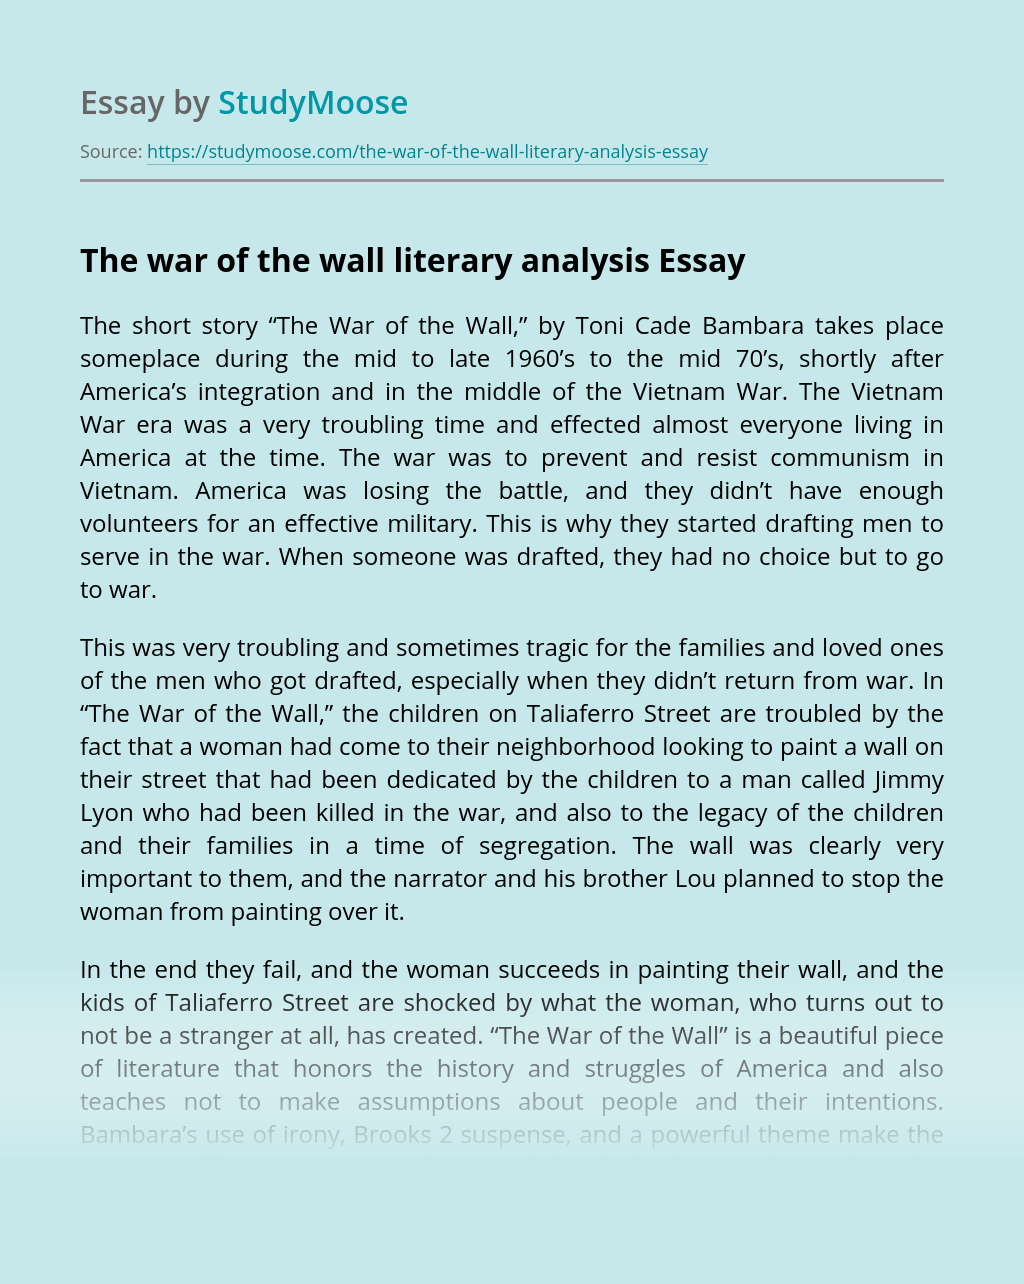 The war of the wall literary analysis